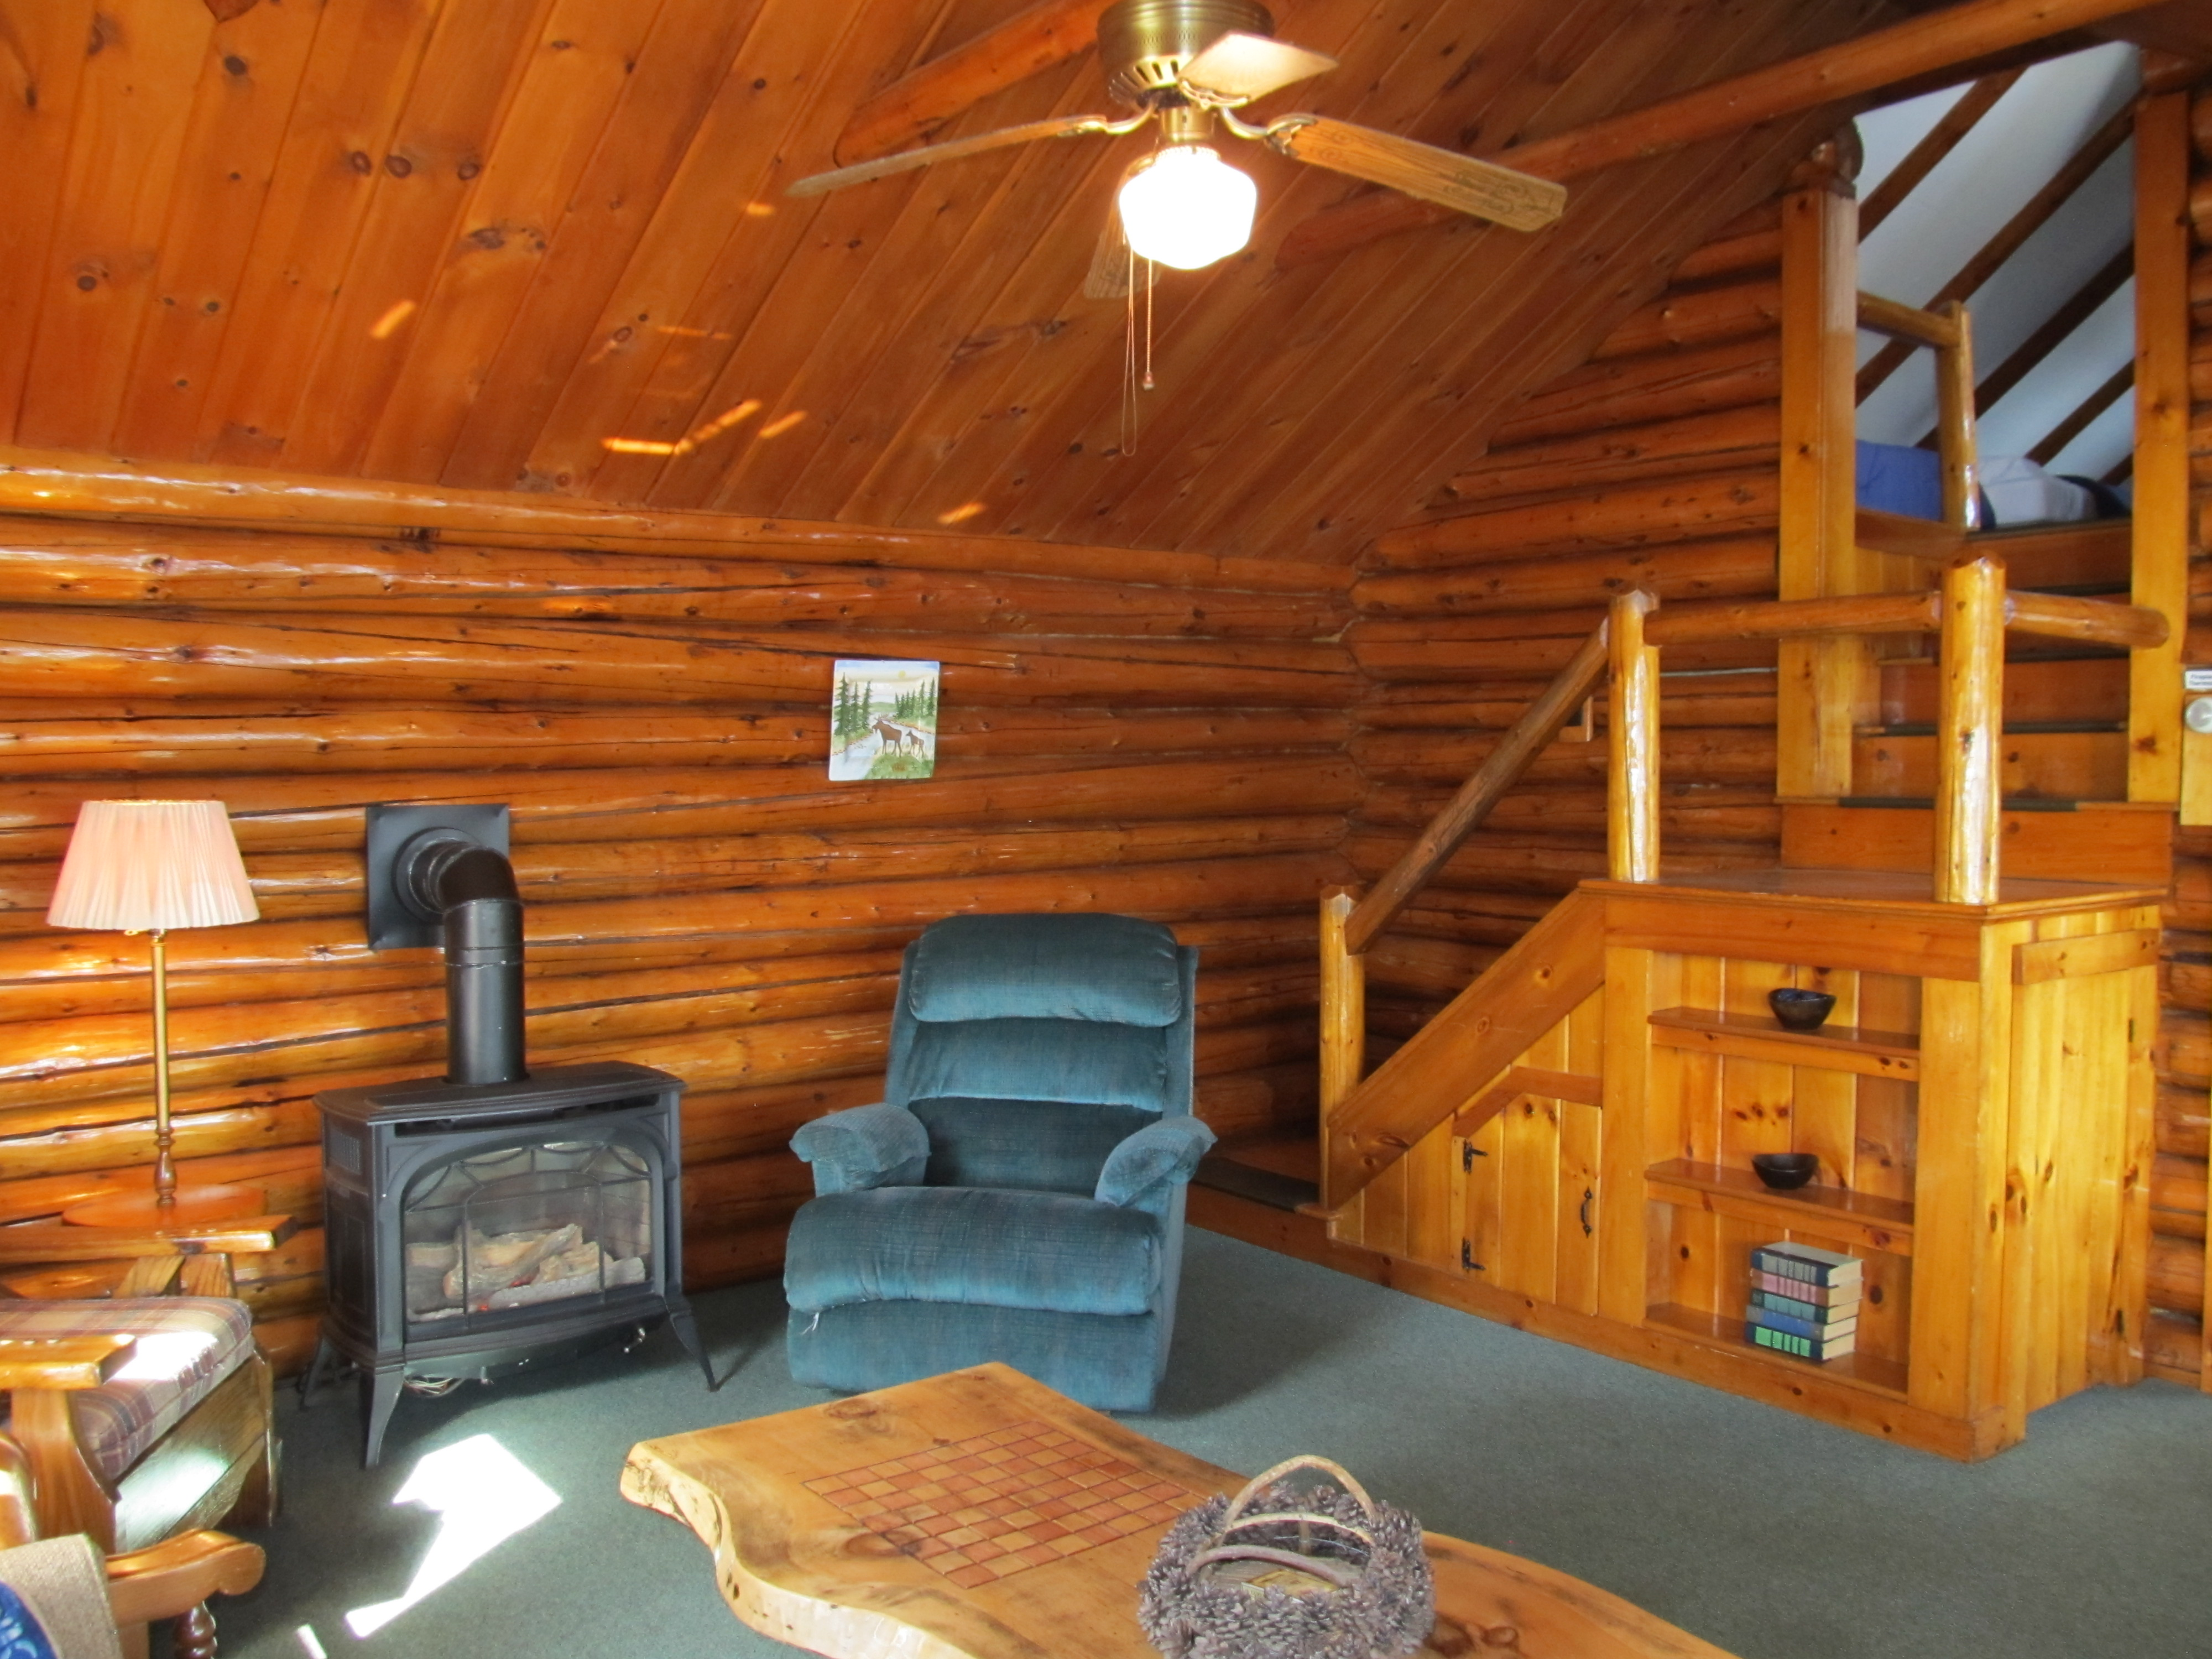 3 Bedroom Log Cabin On First Connecticut Lake With Fireplace